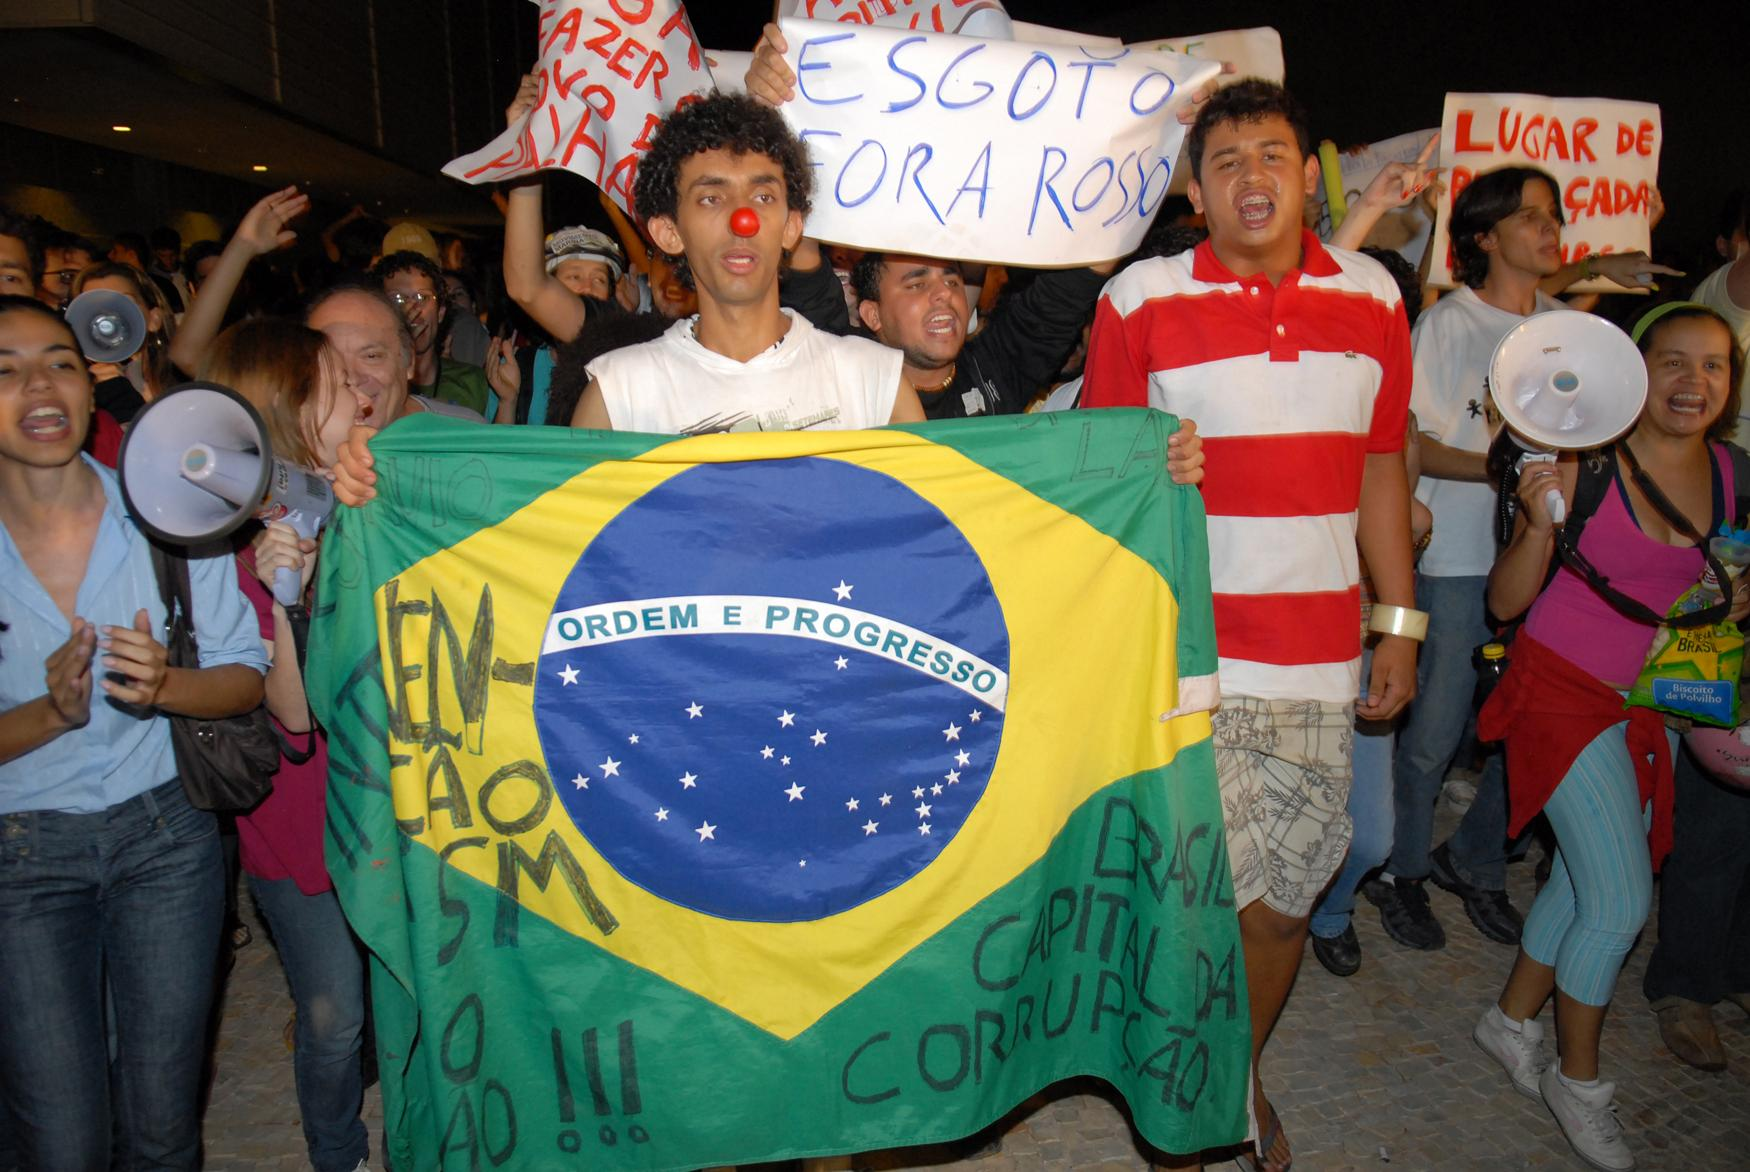 Students at an anti-corruption rally in Brasília, April 22, 2010.